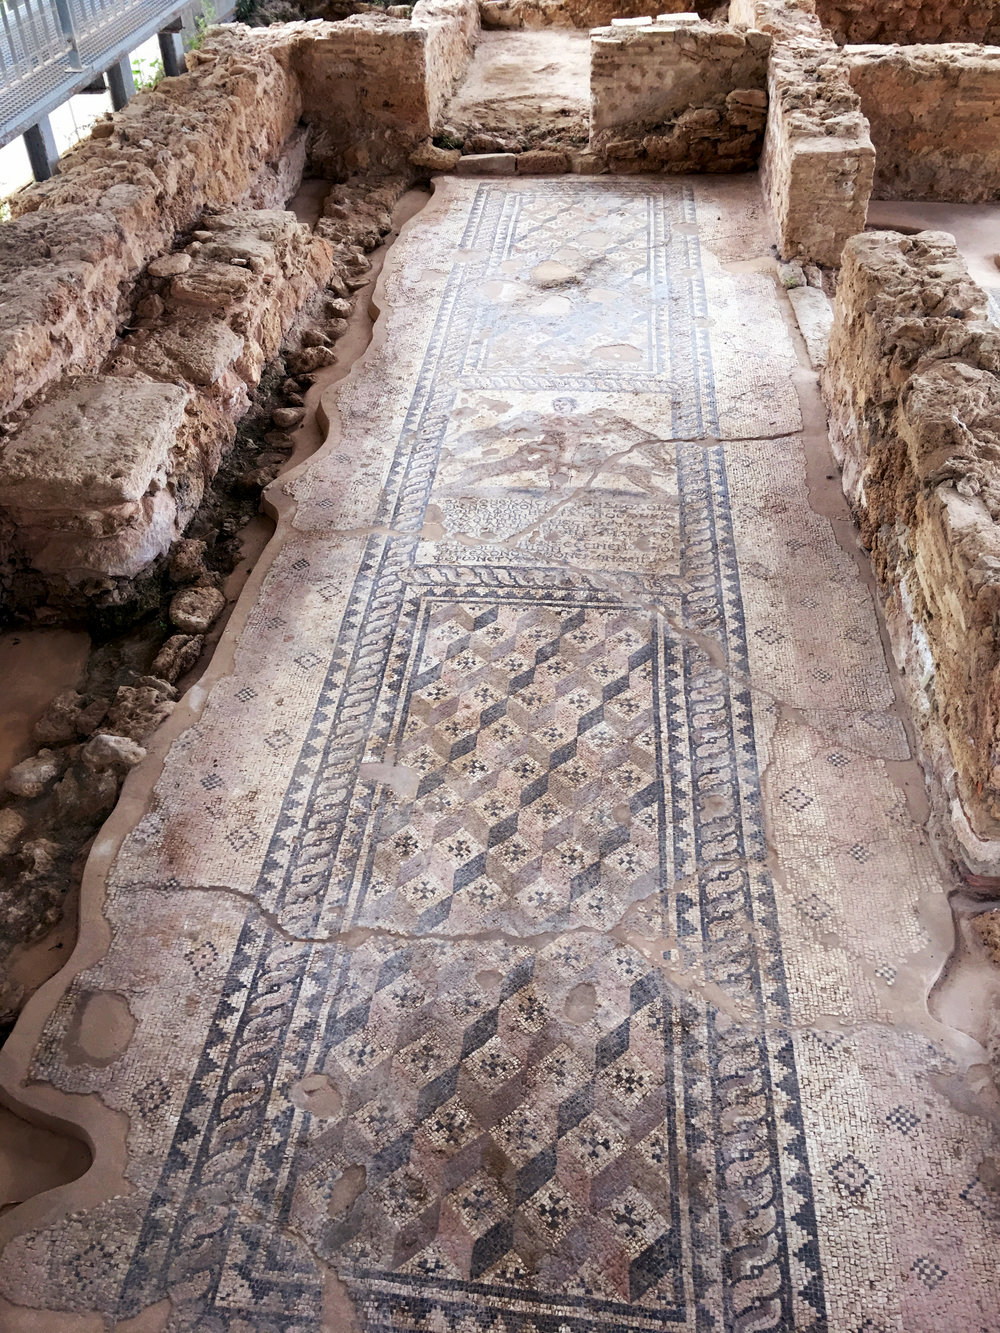 It's remarkable that these tiled floors survived for so long, considering there is evidence of two fires and antiquities thieves over the centuries!